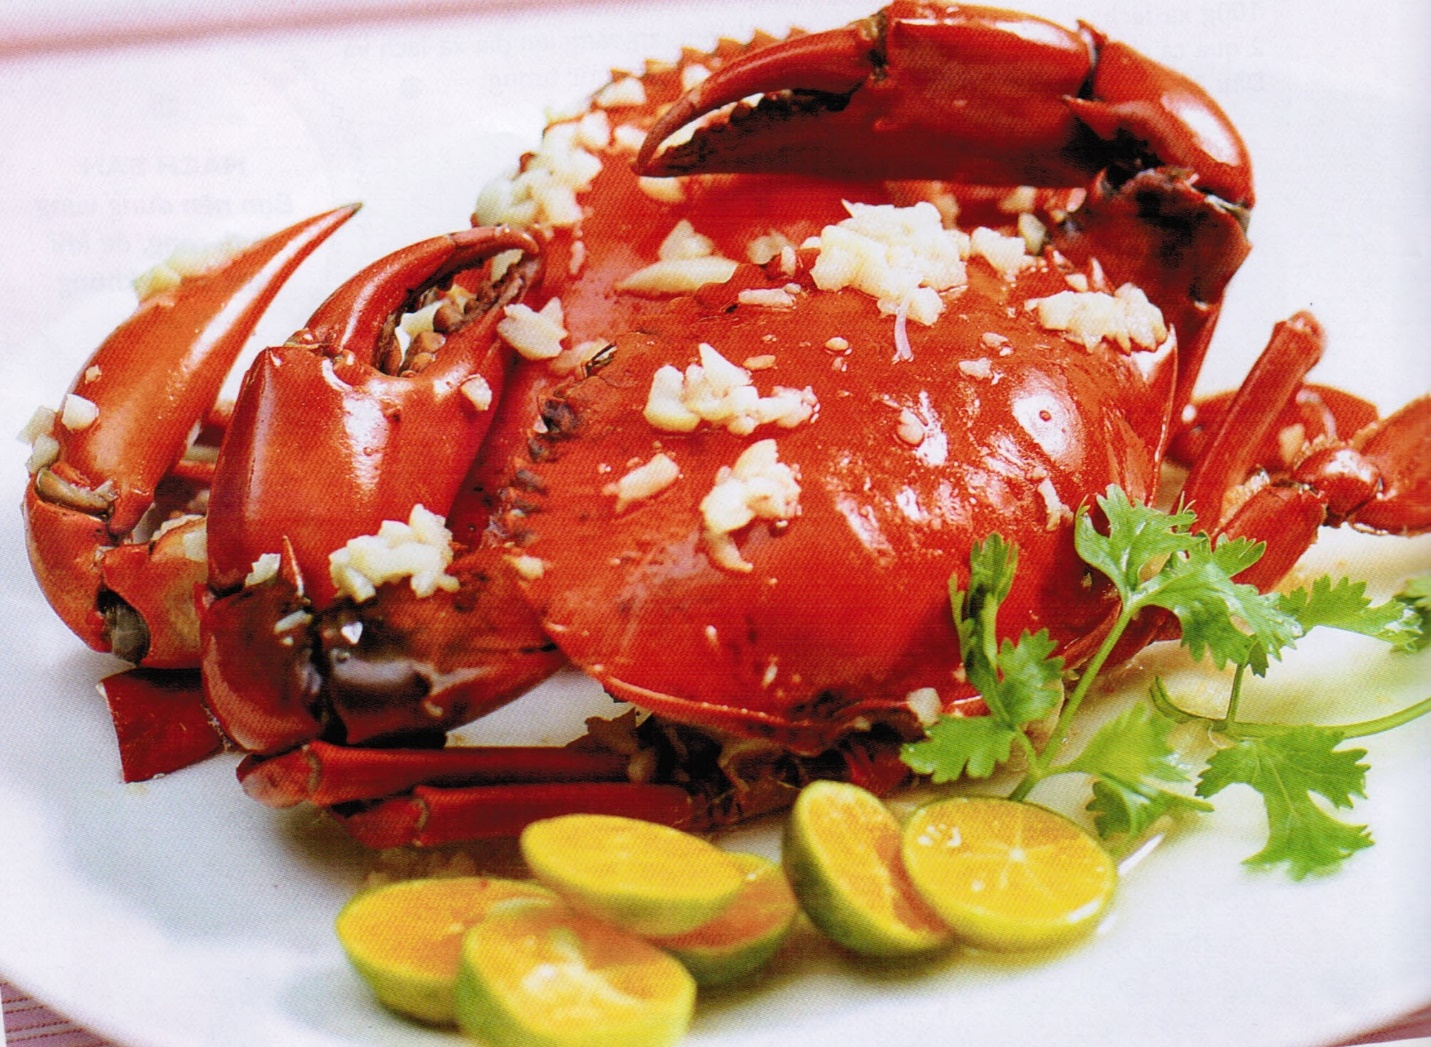 Steamed stone crab is very attractive for tourists